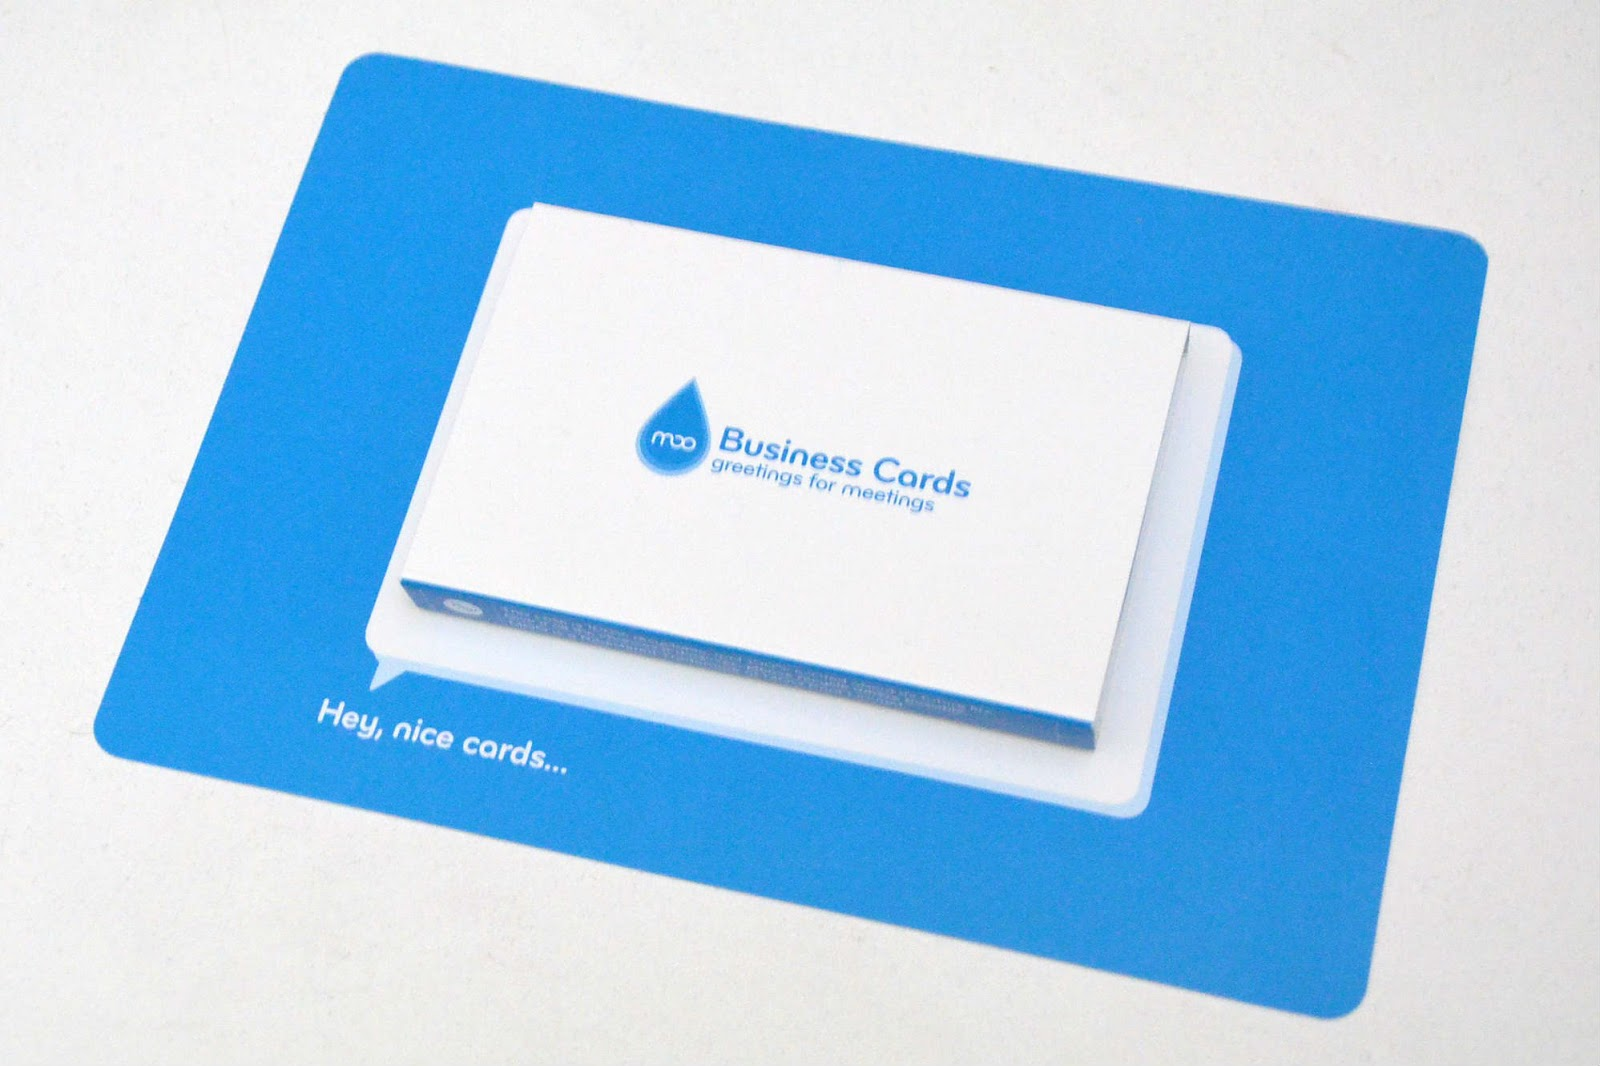 Custom Card Template business cards moo : MishMreow: Moo Business Cards